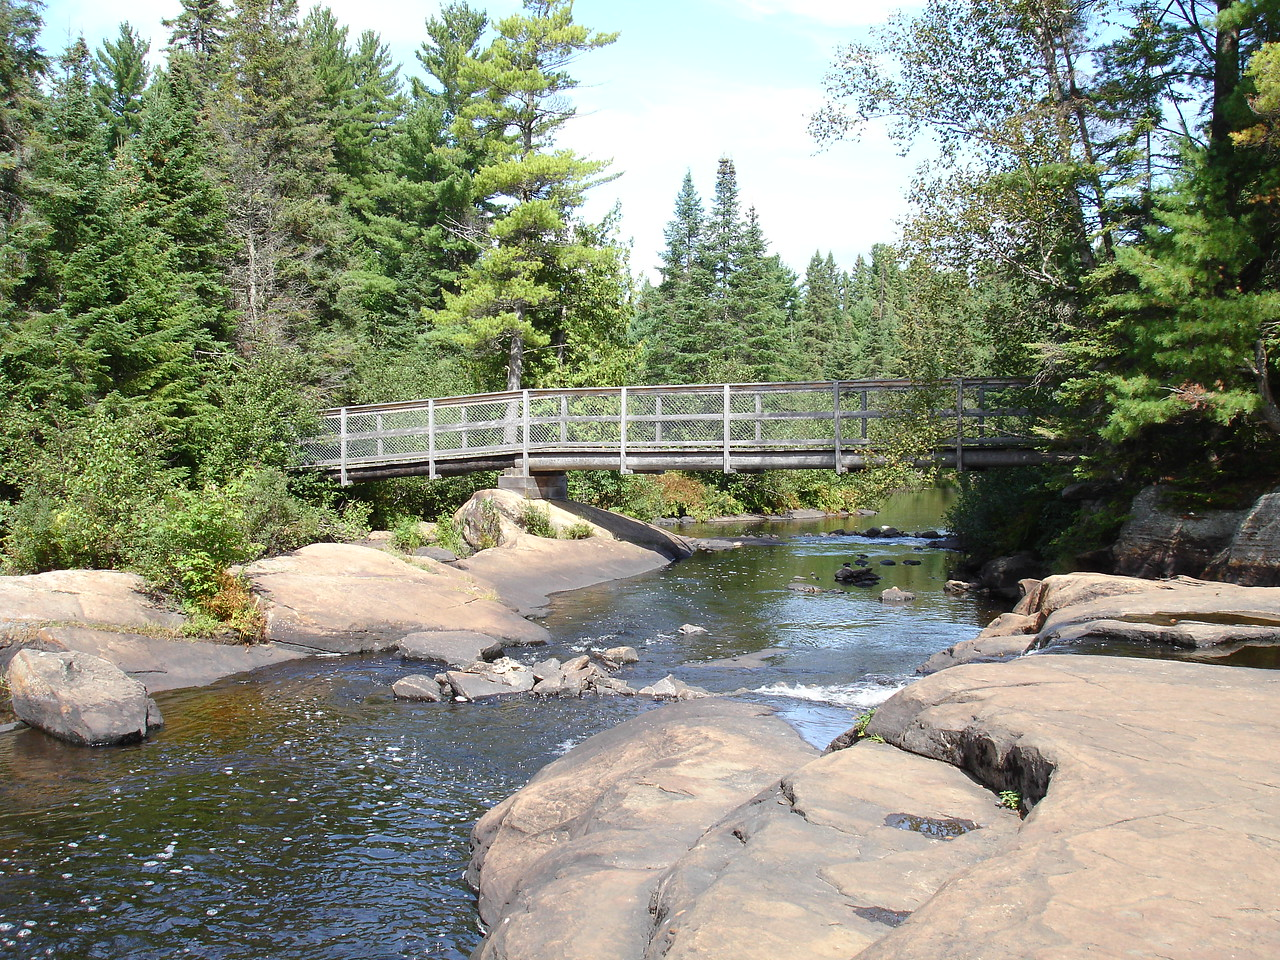 Bridge over the Madawaska